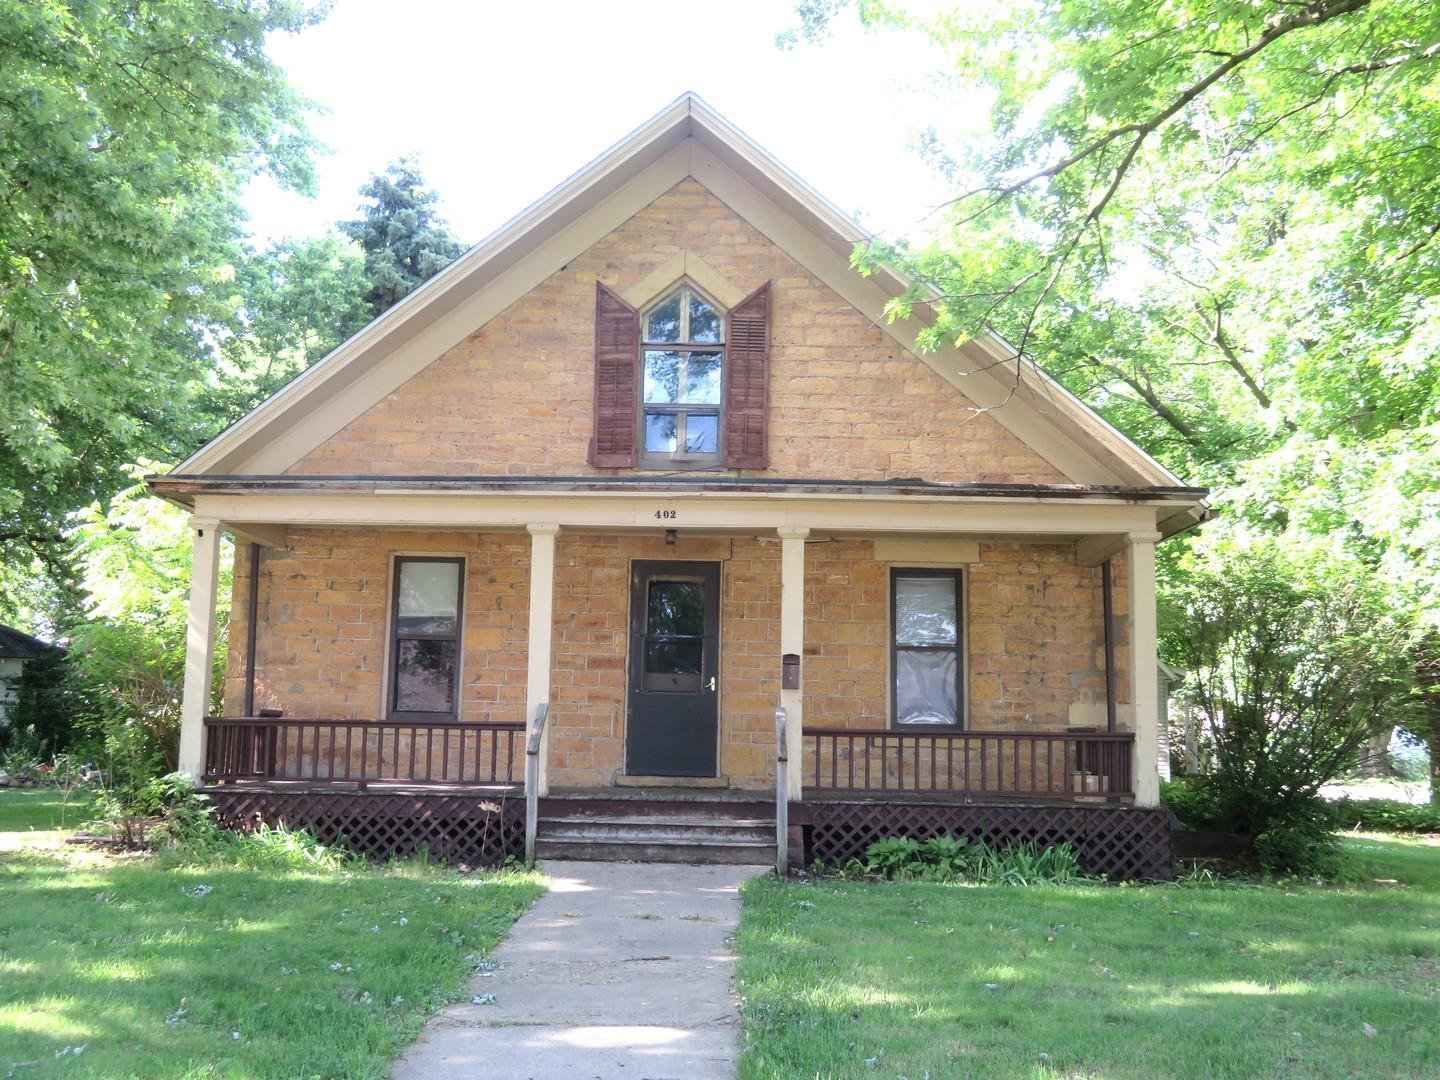 402 W 6th Street, Sterling, IL 61081 - #: 10749413